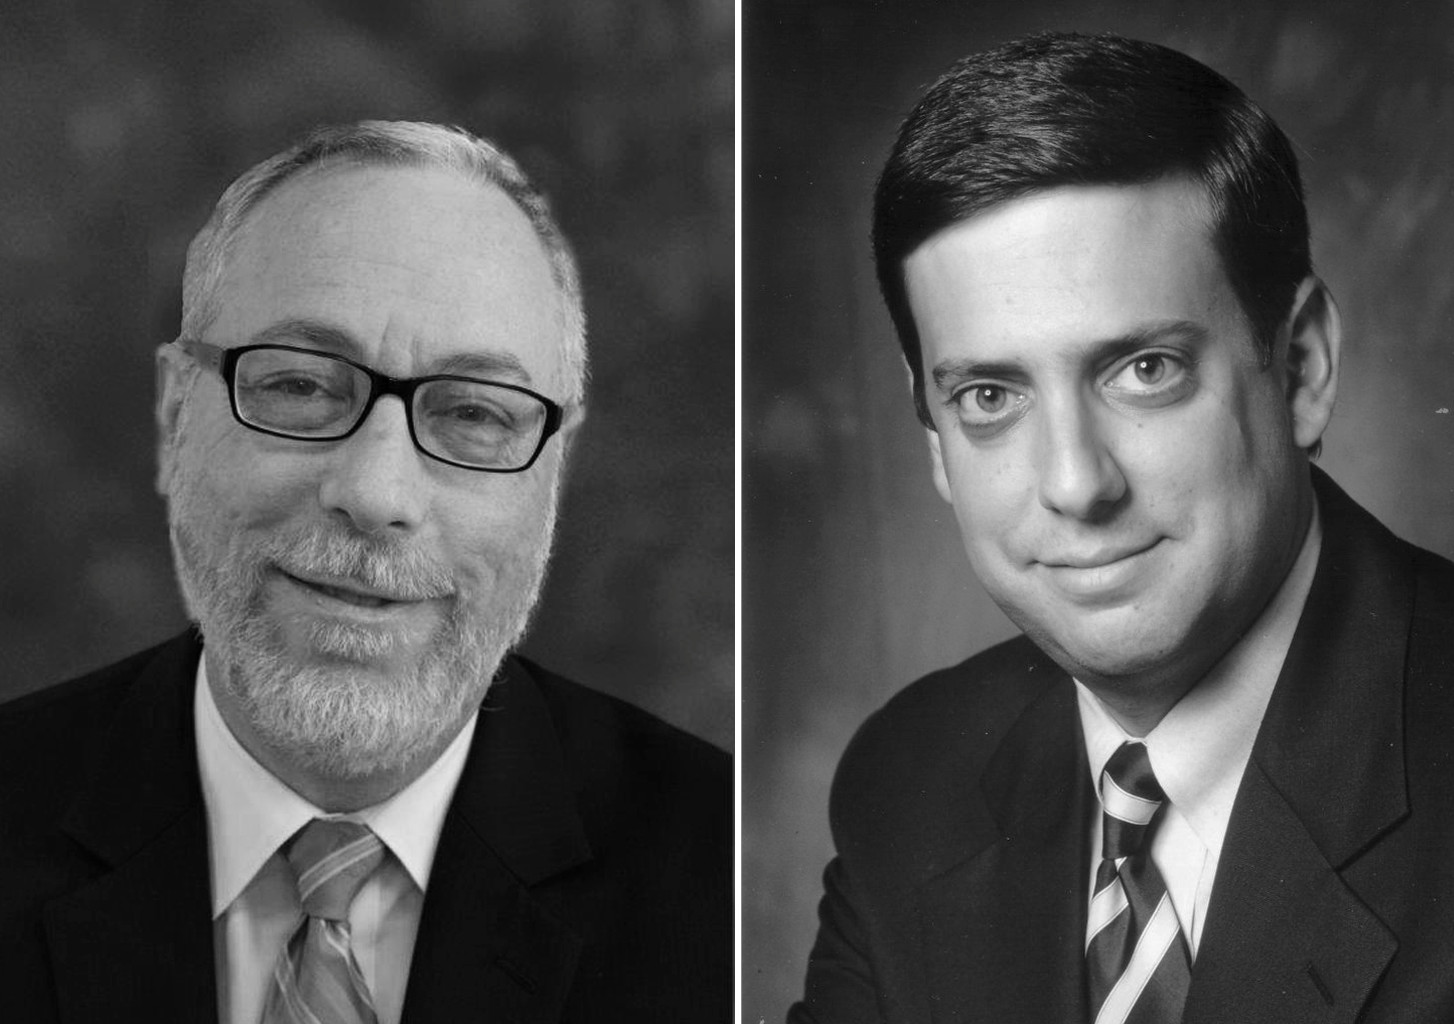 Rabbi Aaron Glatt, M.D., left, and Nathan Diament